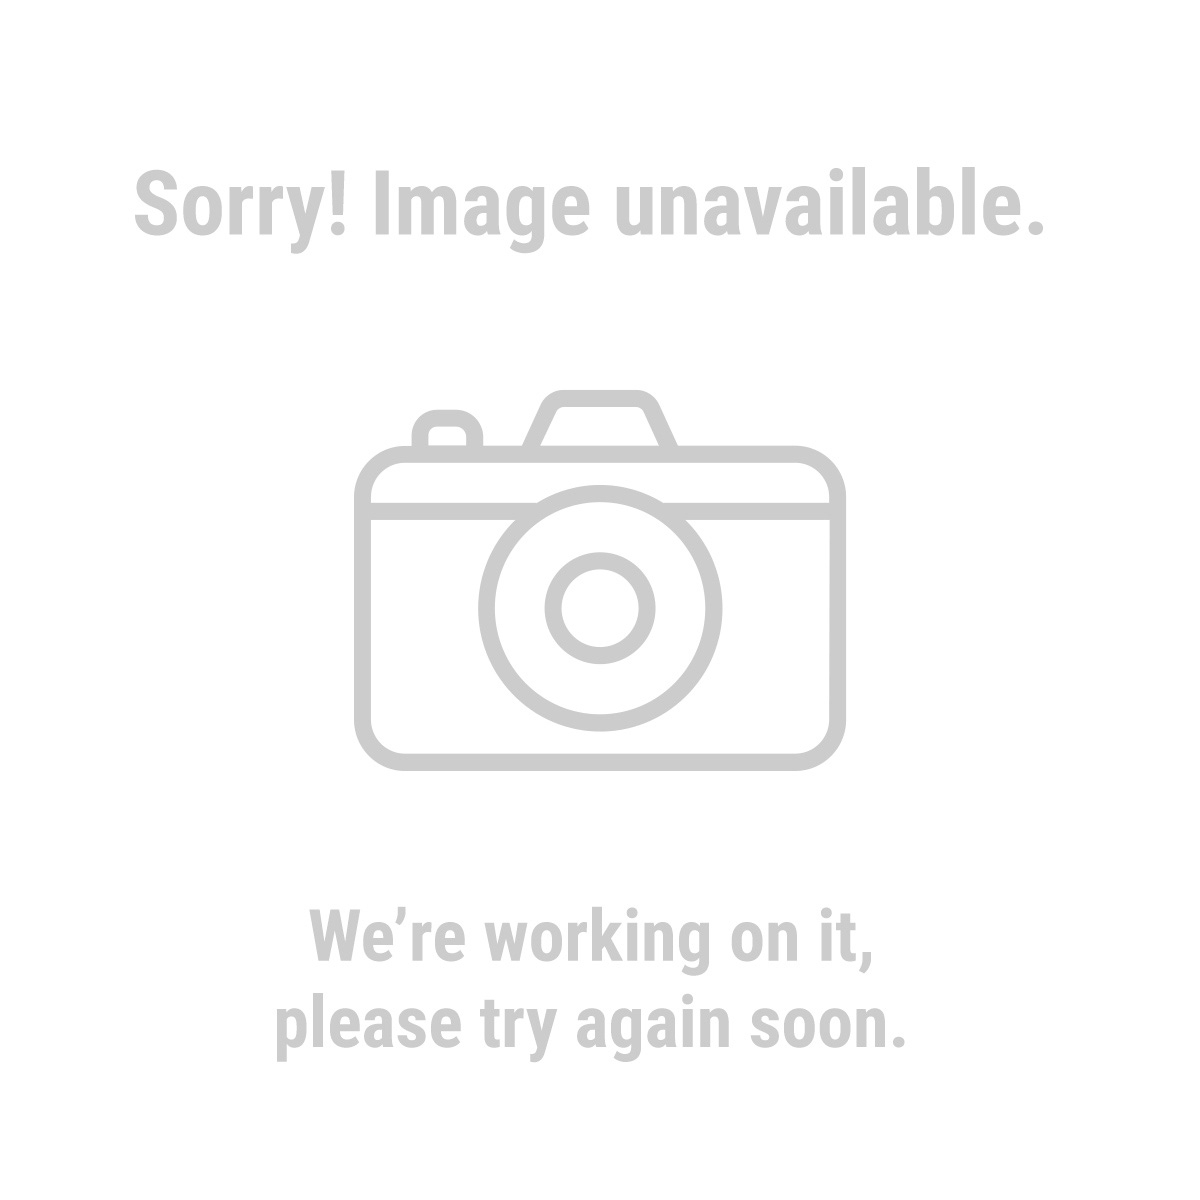 98502 4 Piece Magnetic Hook Set